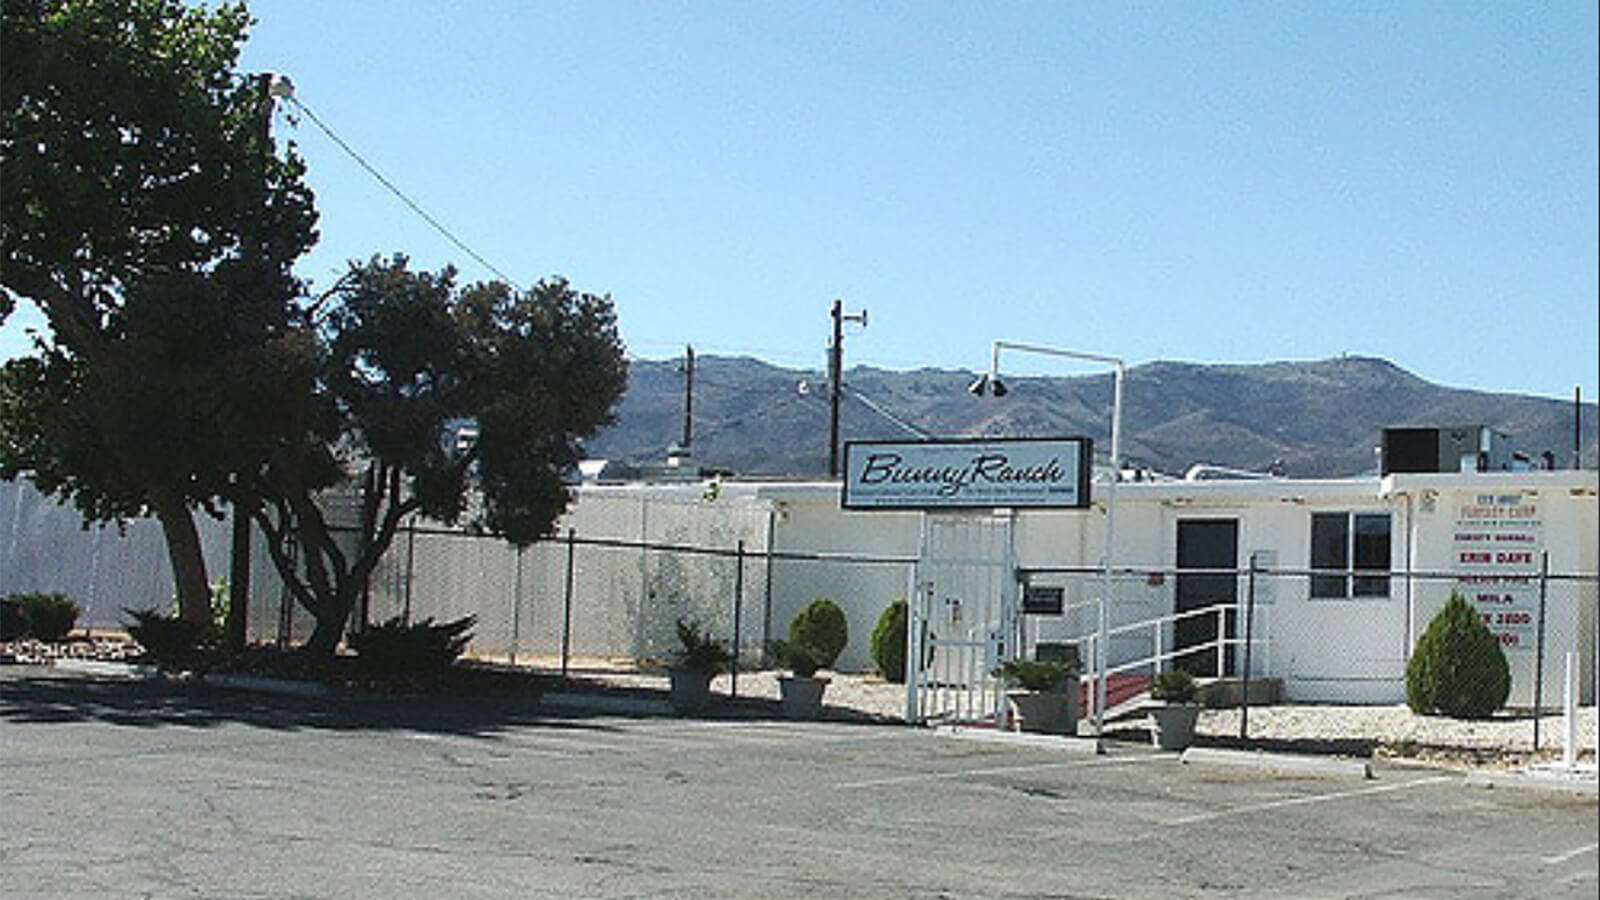 The world famous original Bunny Ranch is one of the Offbeat Reno activities that you probably didn't even realize was in town